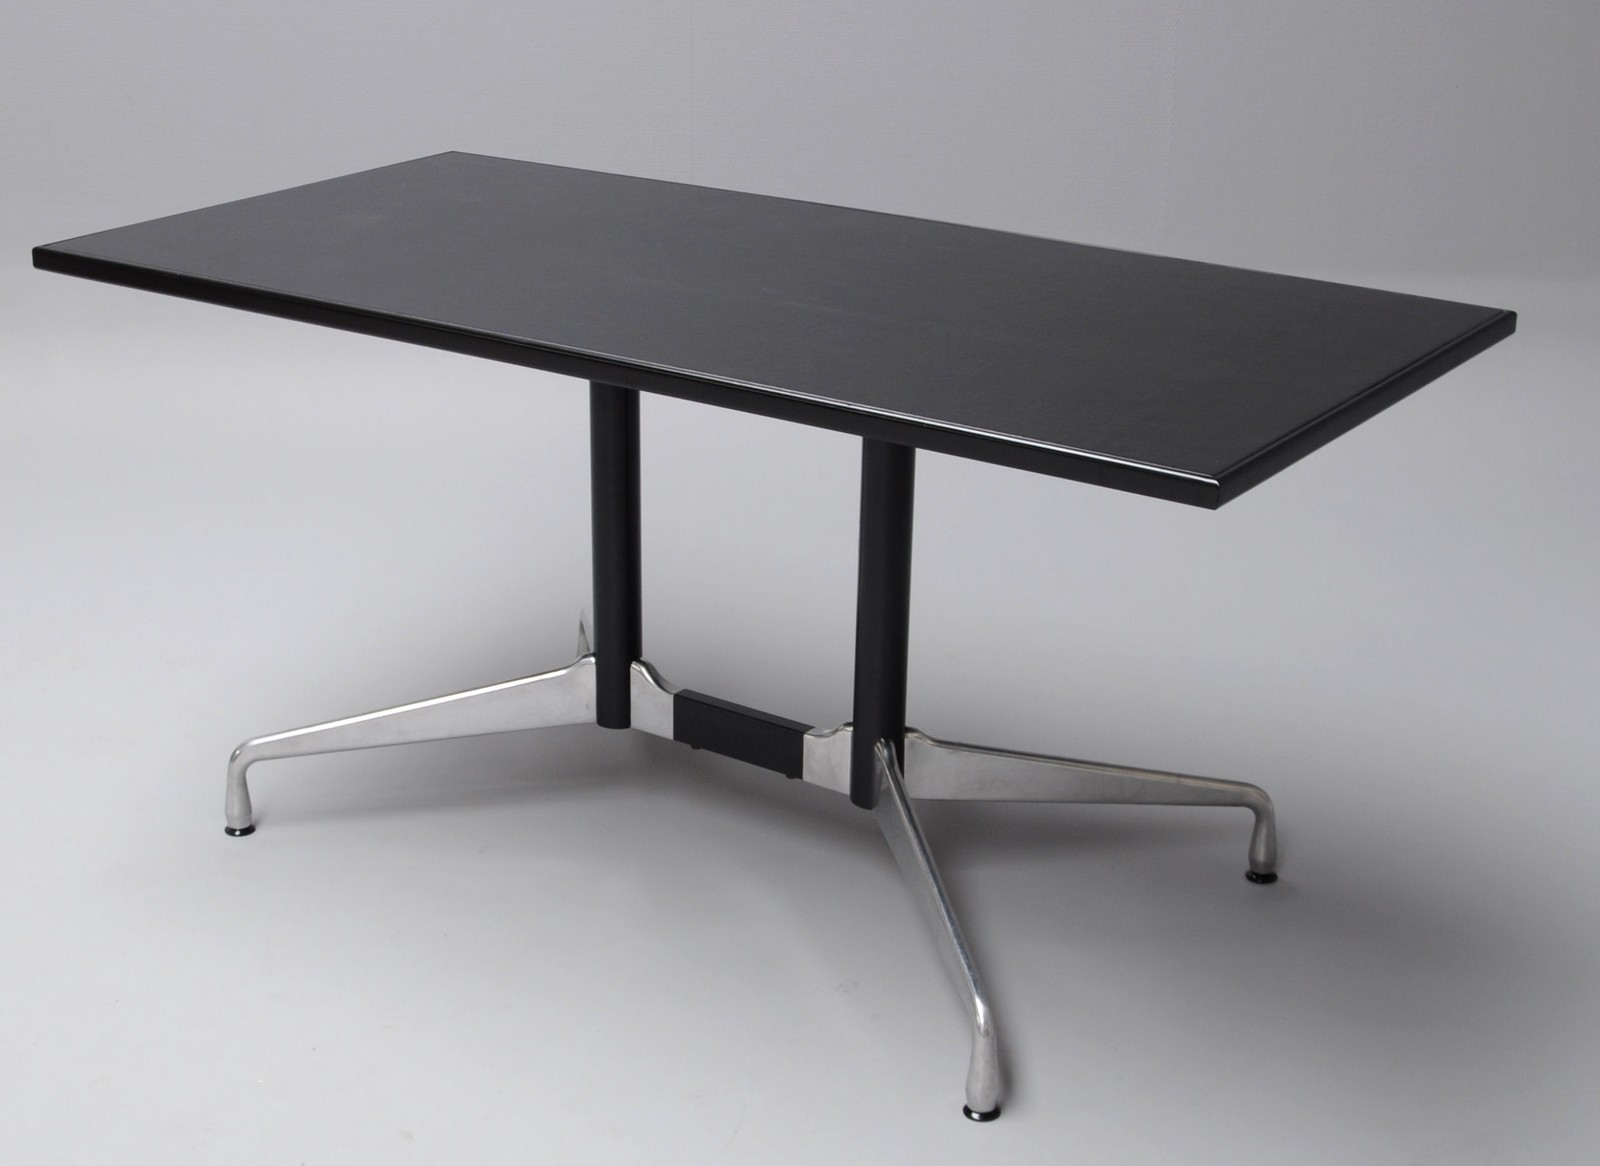 Charles & Ray Eames. Segmented Table covered with black leather